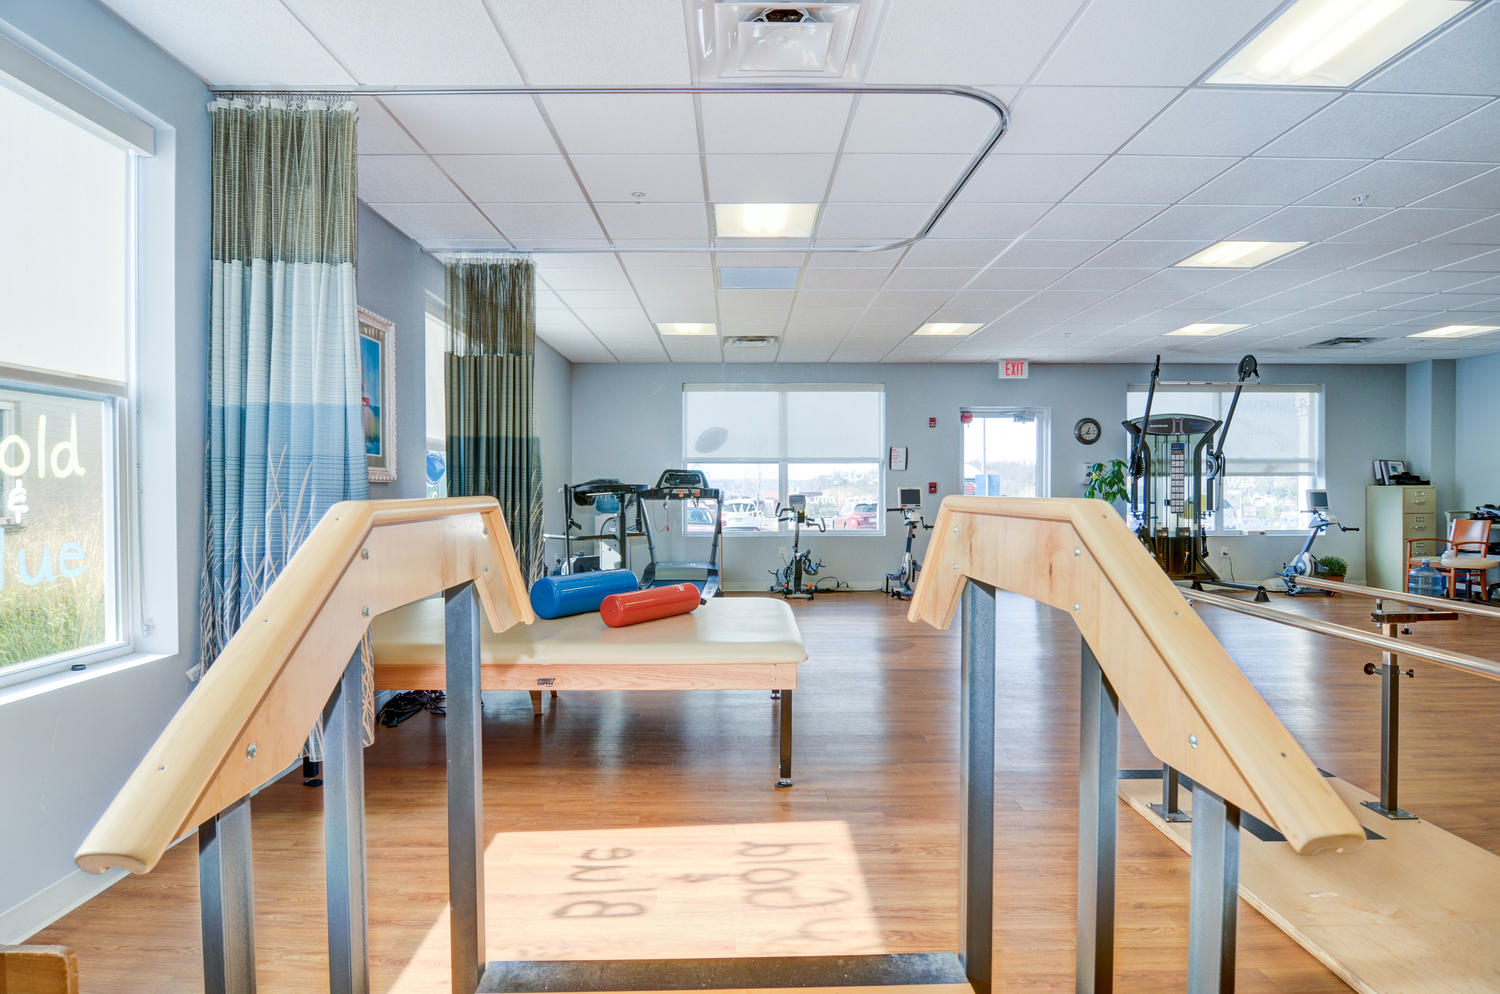 Stonerise Morgantown Therapy and Rehabilitation room with exercise equipment